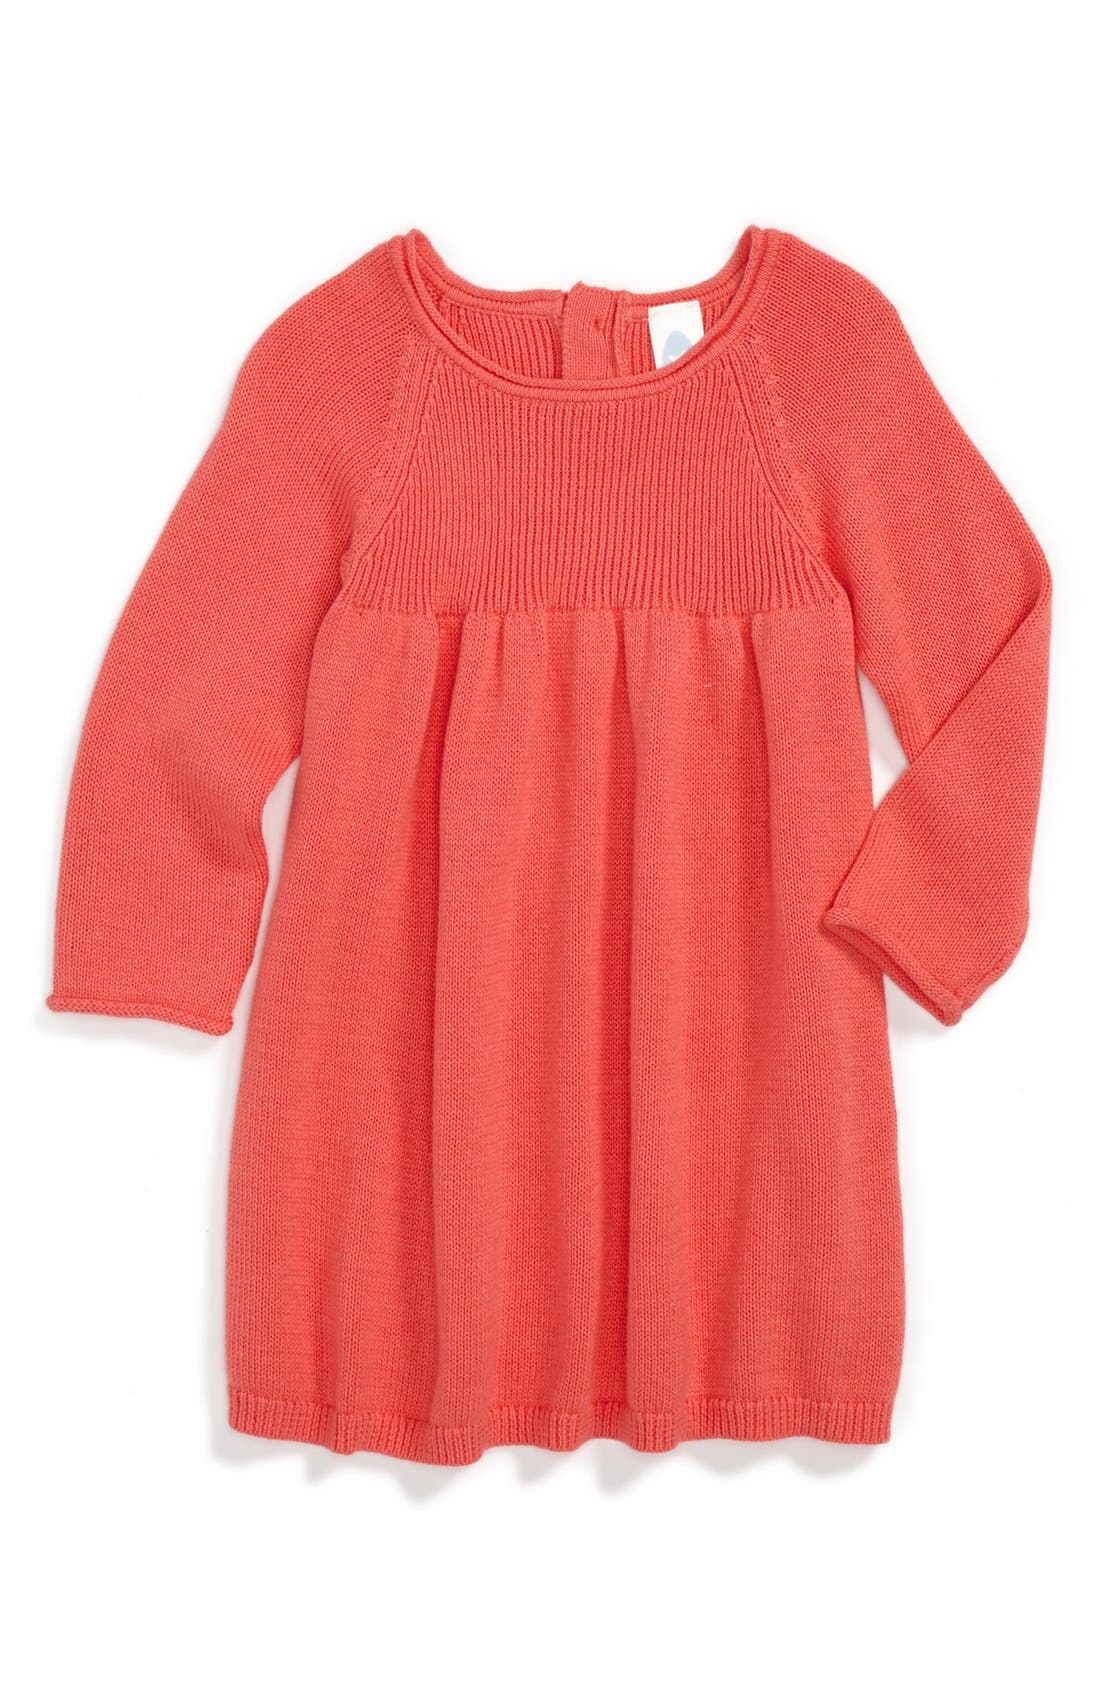 Alternate Image 1 Selected - Stem Baby Sweater Dress (Baby Girls)